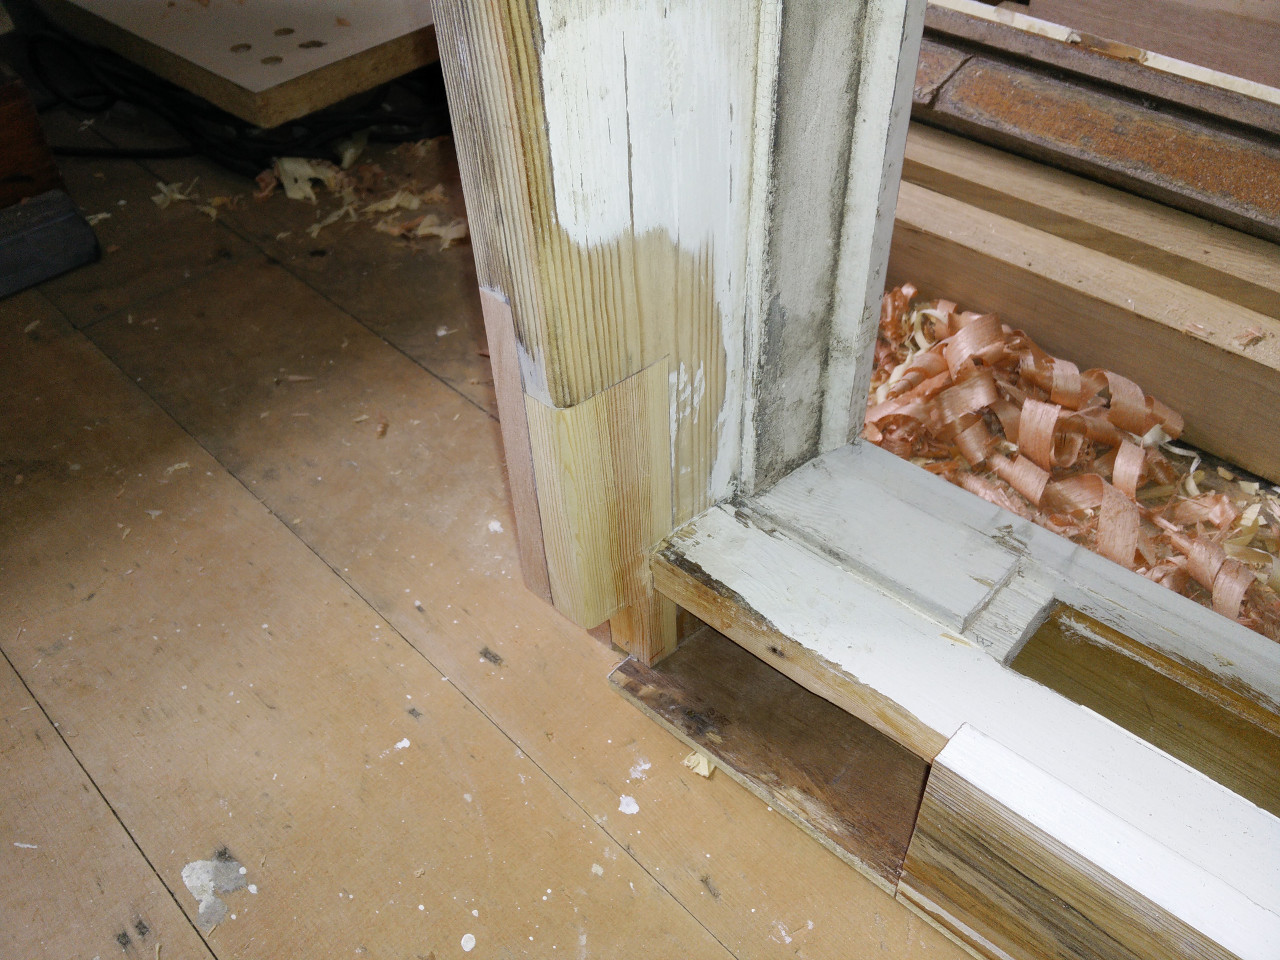 Repairing a window sill part 5 wobblycogs workshop for Window sill replacement